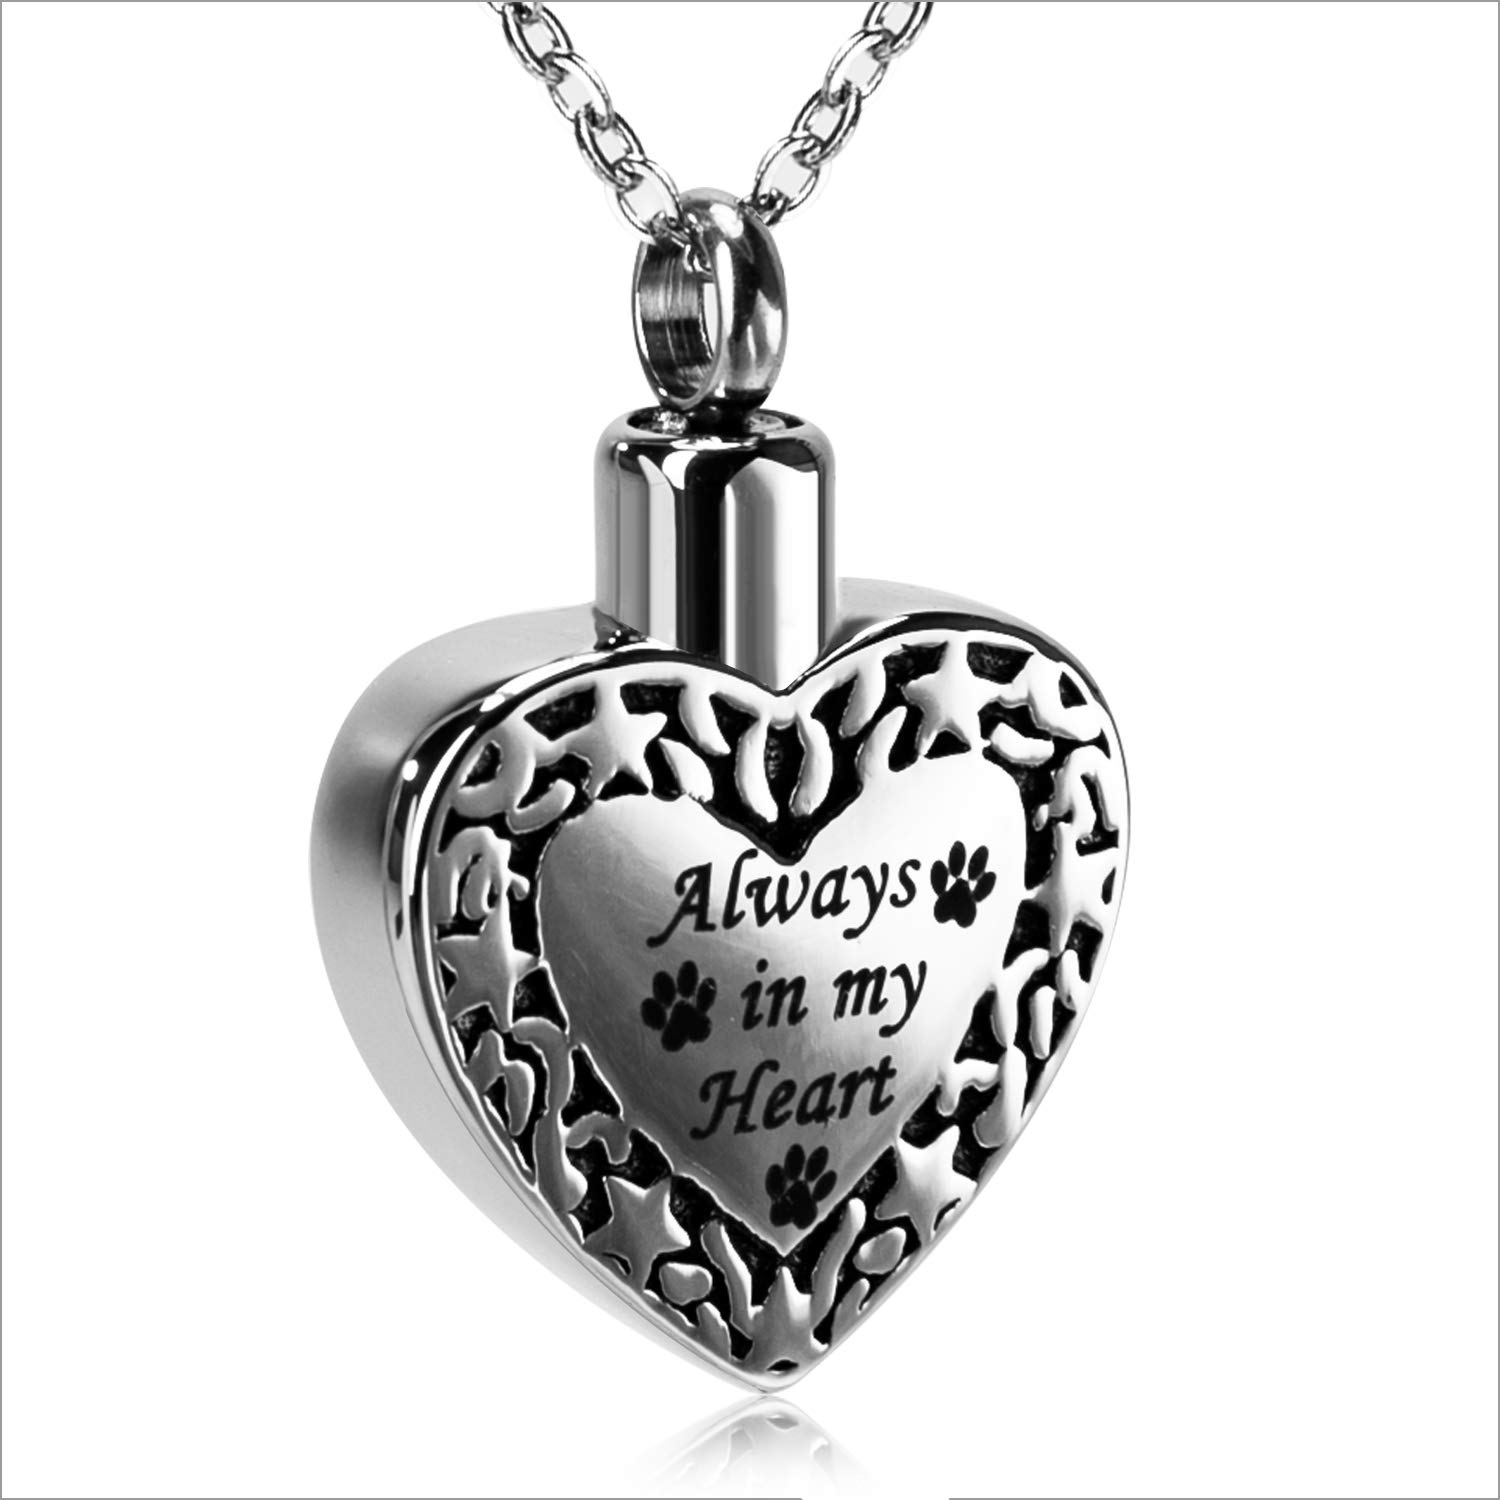 yipet Cremation Urn Necklace Heart Shaped Memorial Necklace Set, Always in My Heart, 20''-Have